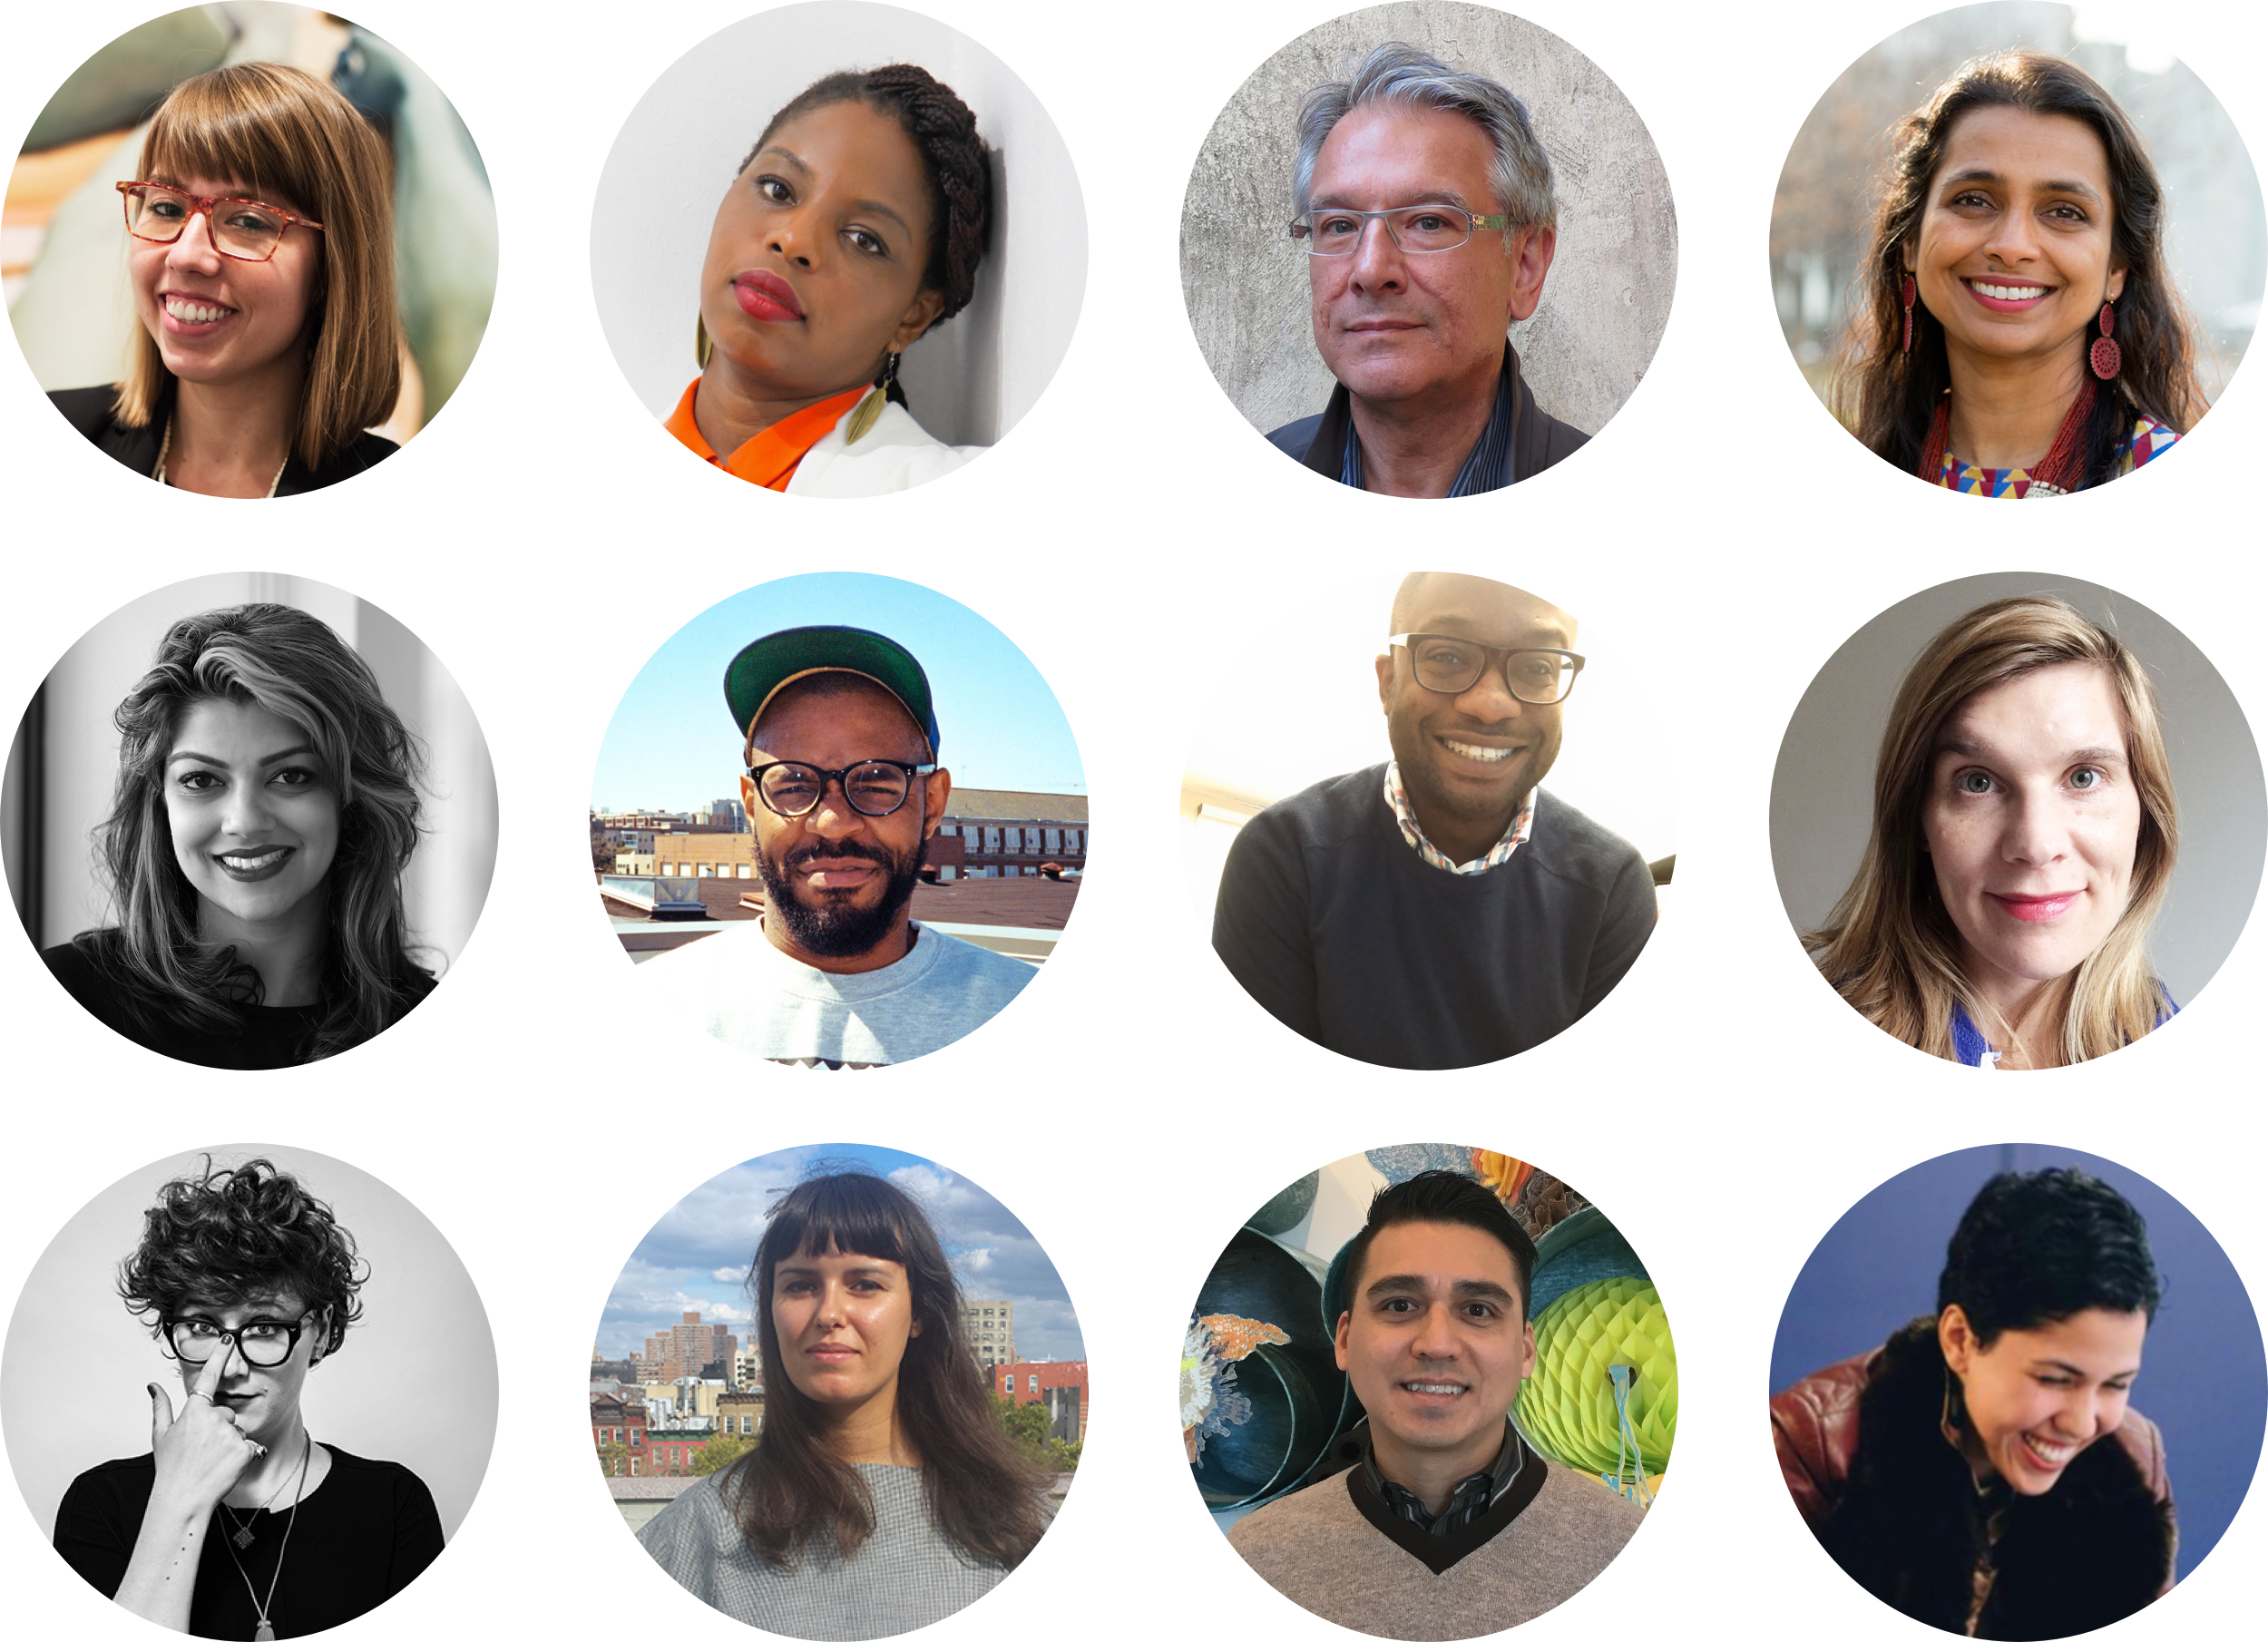 Top to bottom, left to right: Carmen Hermo, Zina Saro-Wiwa, Richard Klein, Prerana Reddy, Jasmine Wahi, James Williams II, Horace Ballard, Jennifer Schmidt, Barbara Bourland, Anna Harsanyi, Gabriel de Guzman, Ali Rosa-Salas